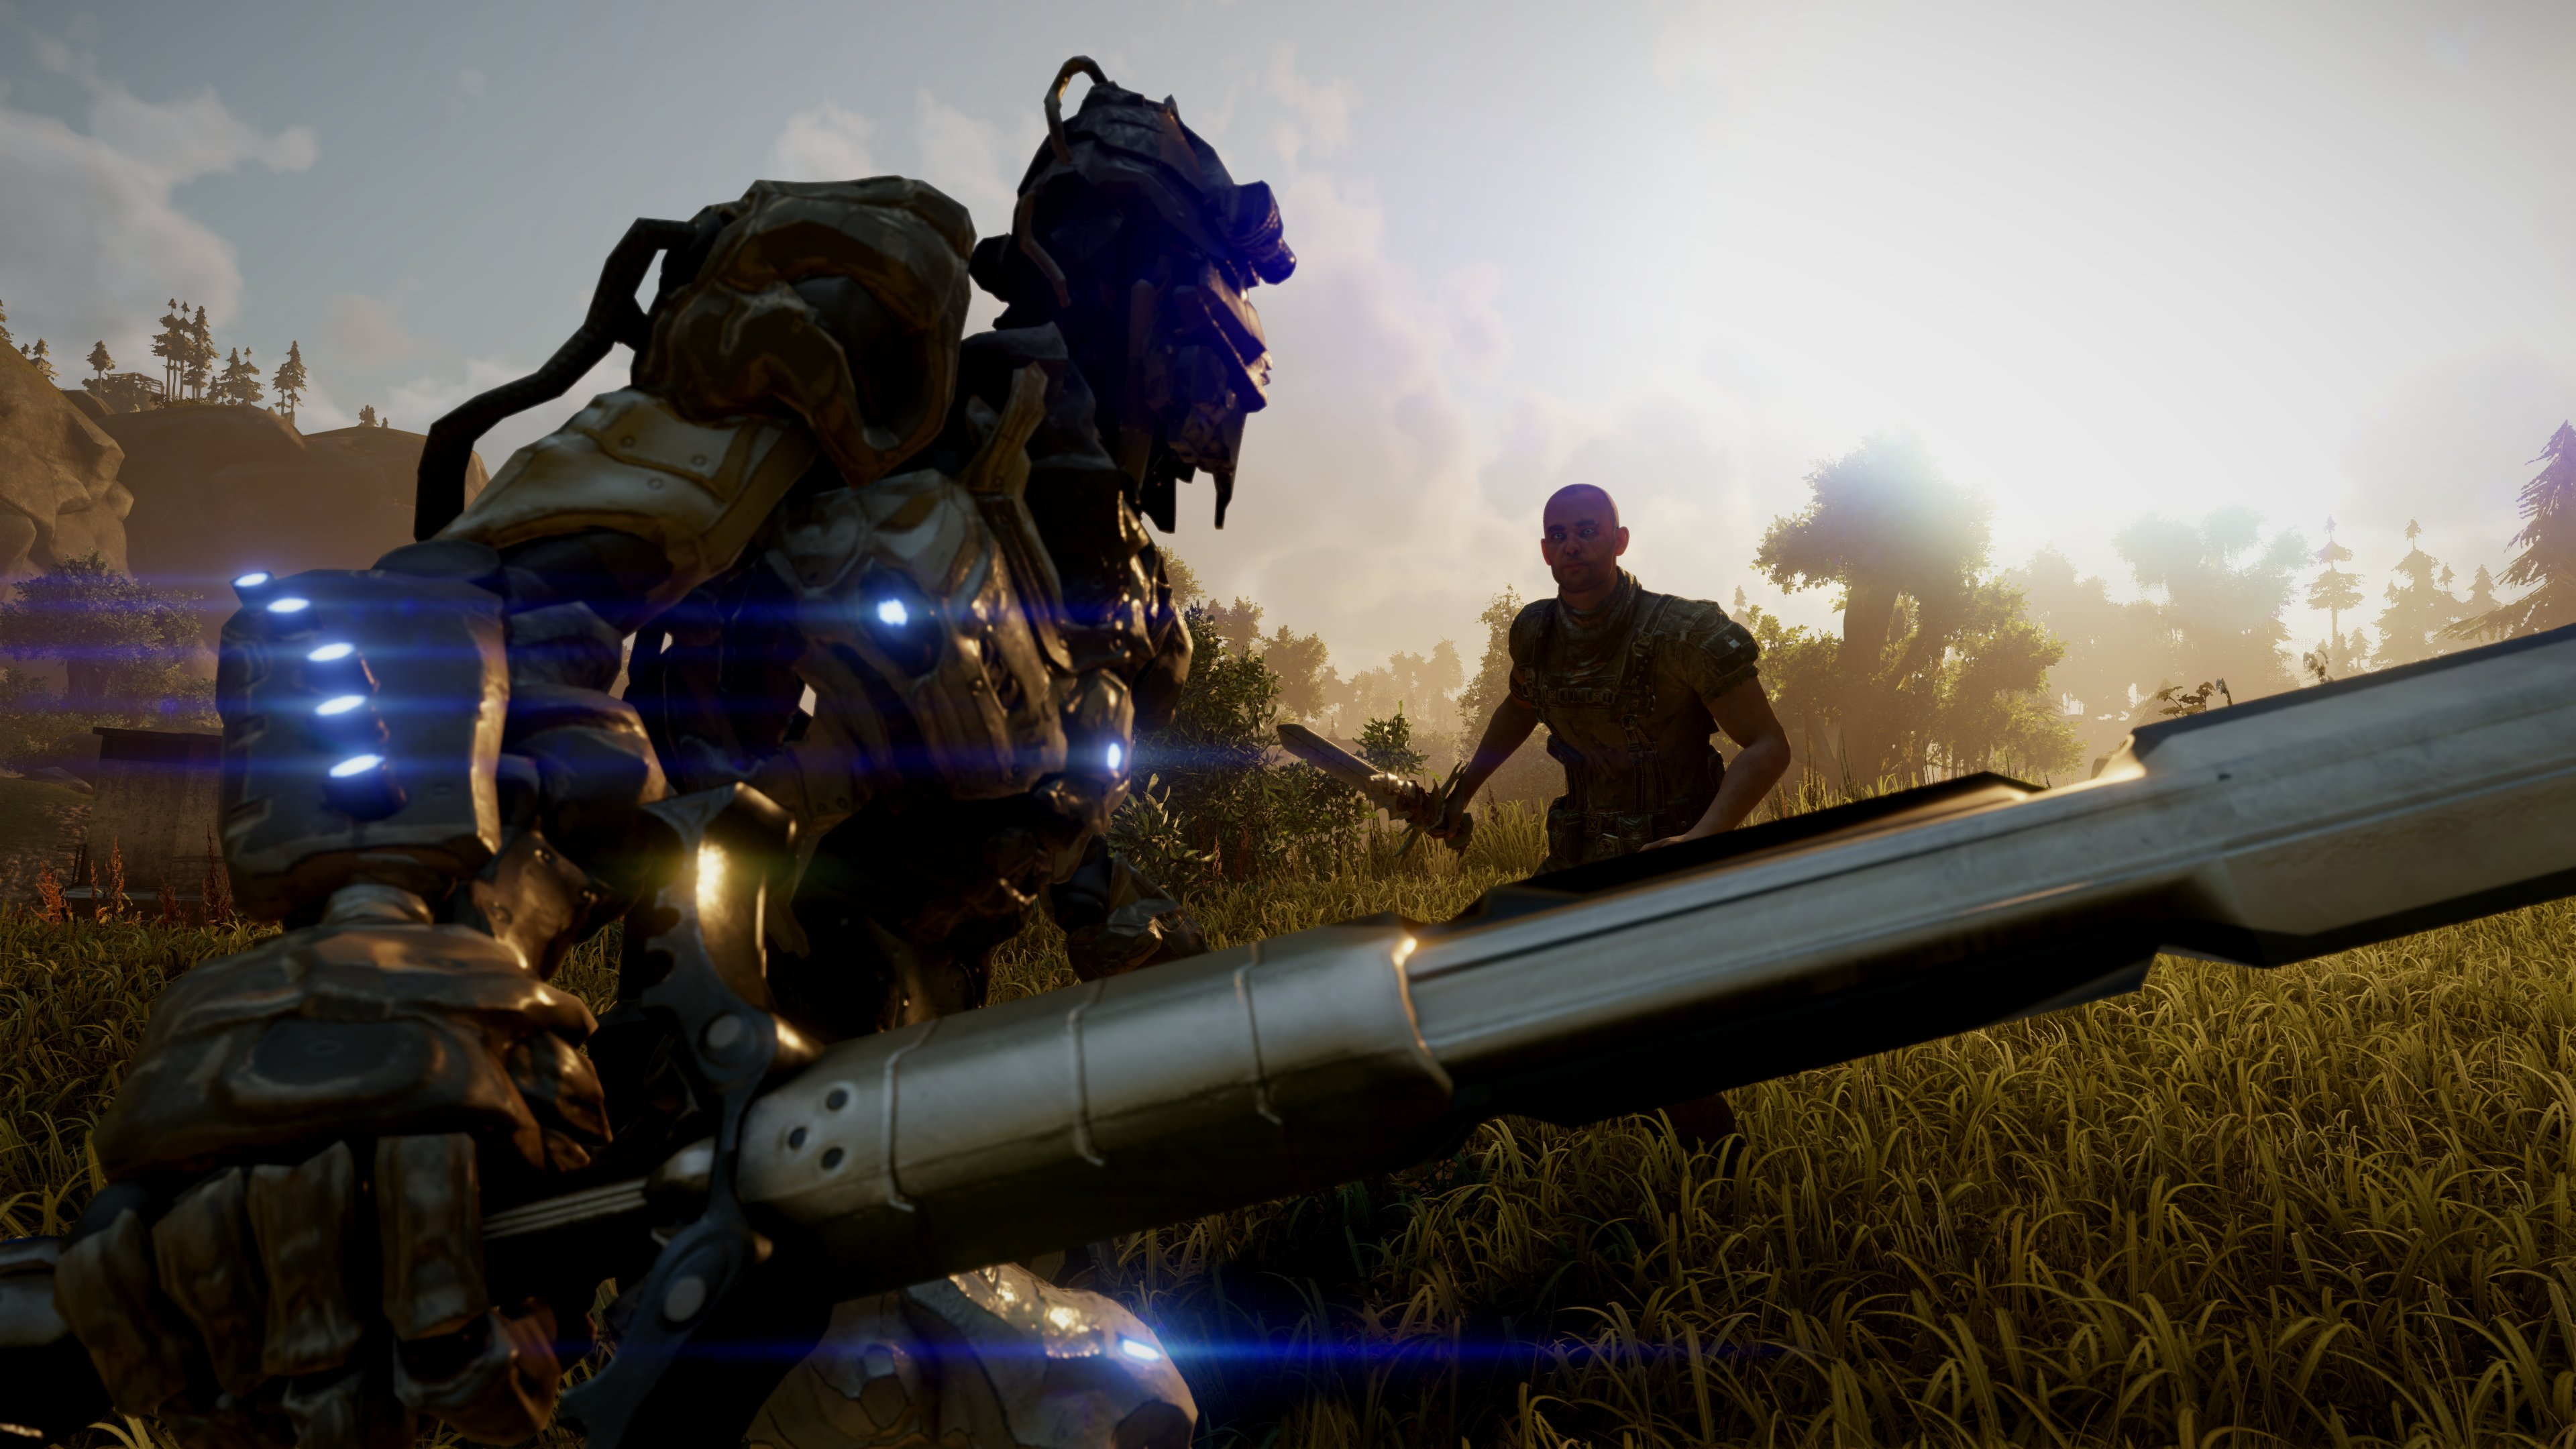 ELEX_Fighting_Alb_Robot_3840X2160_noUI_0036